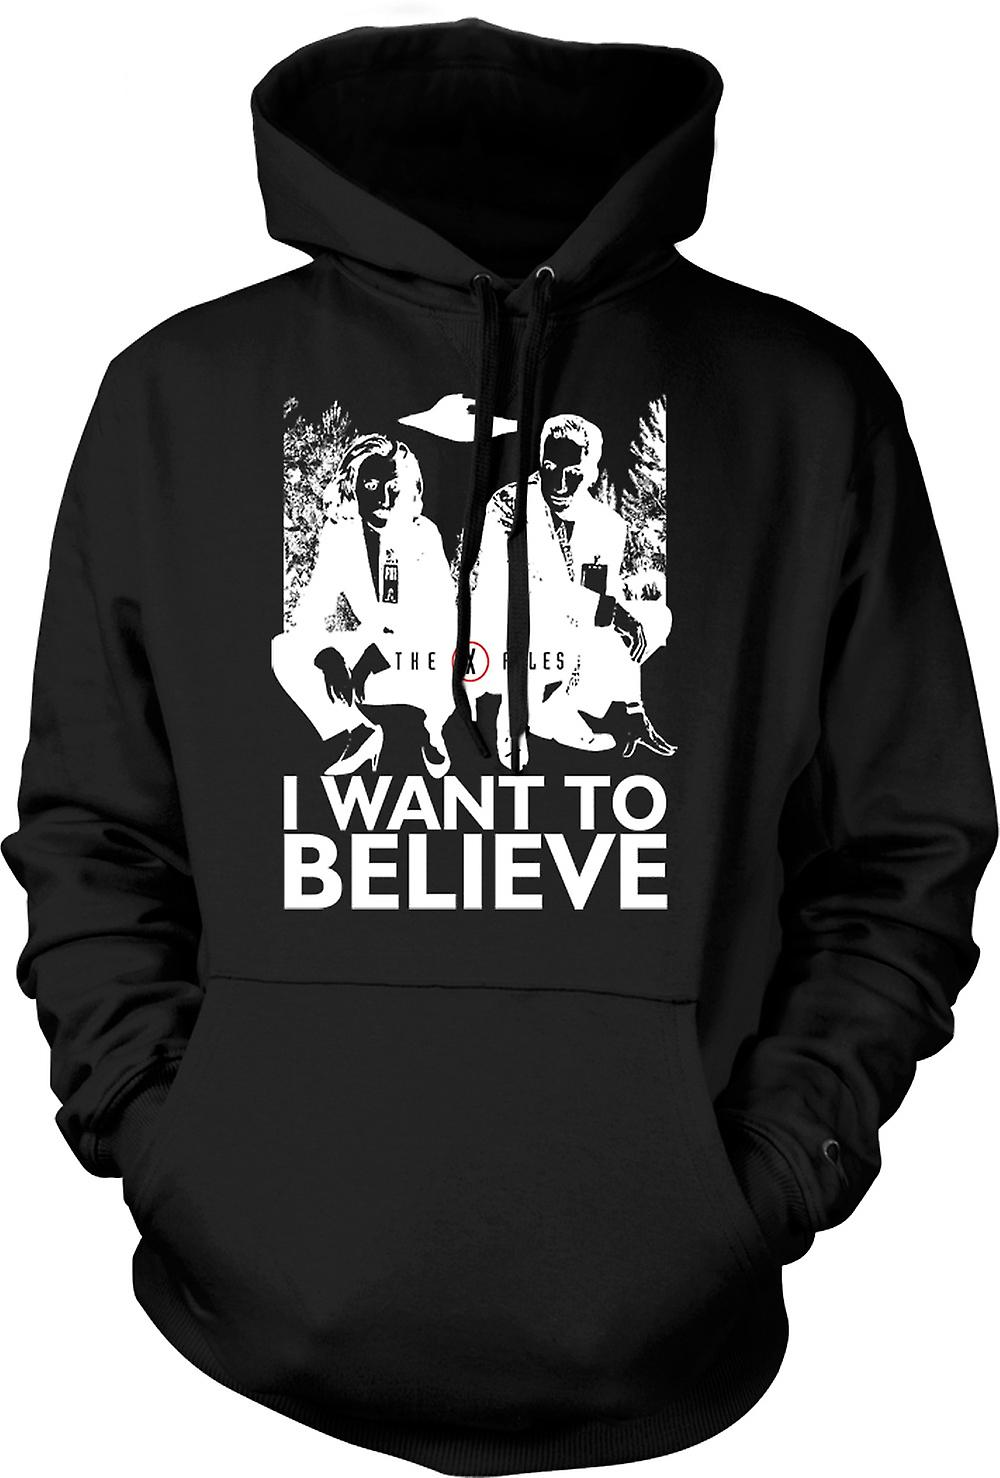 Mens Hoodie - X Files I Want To believe - UFO